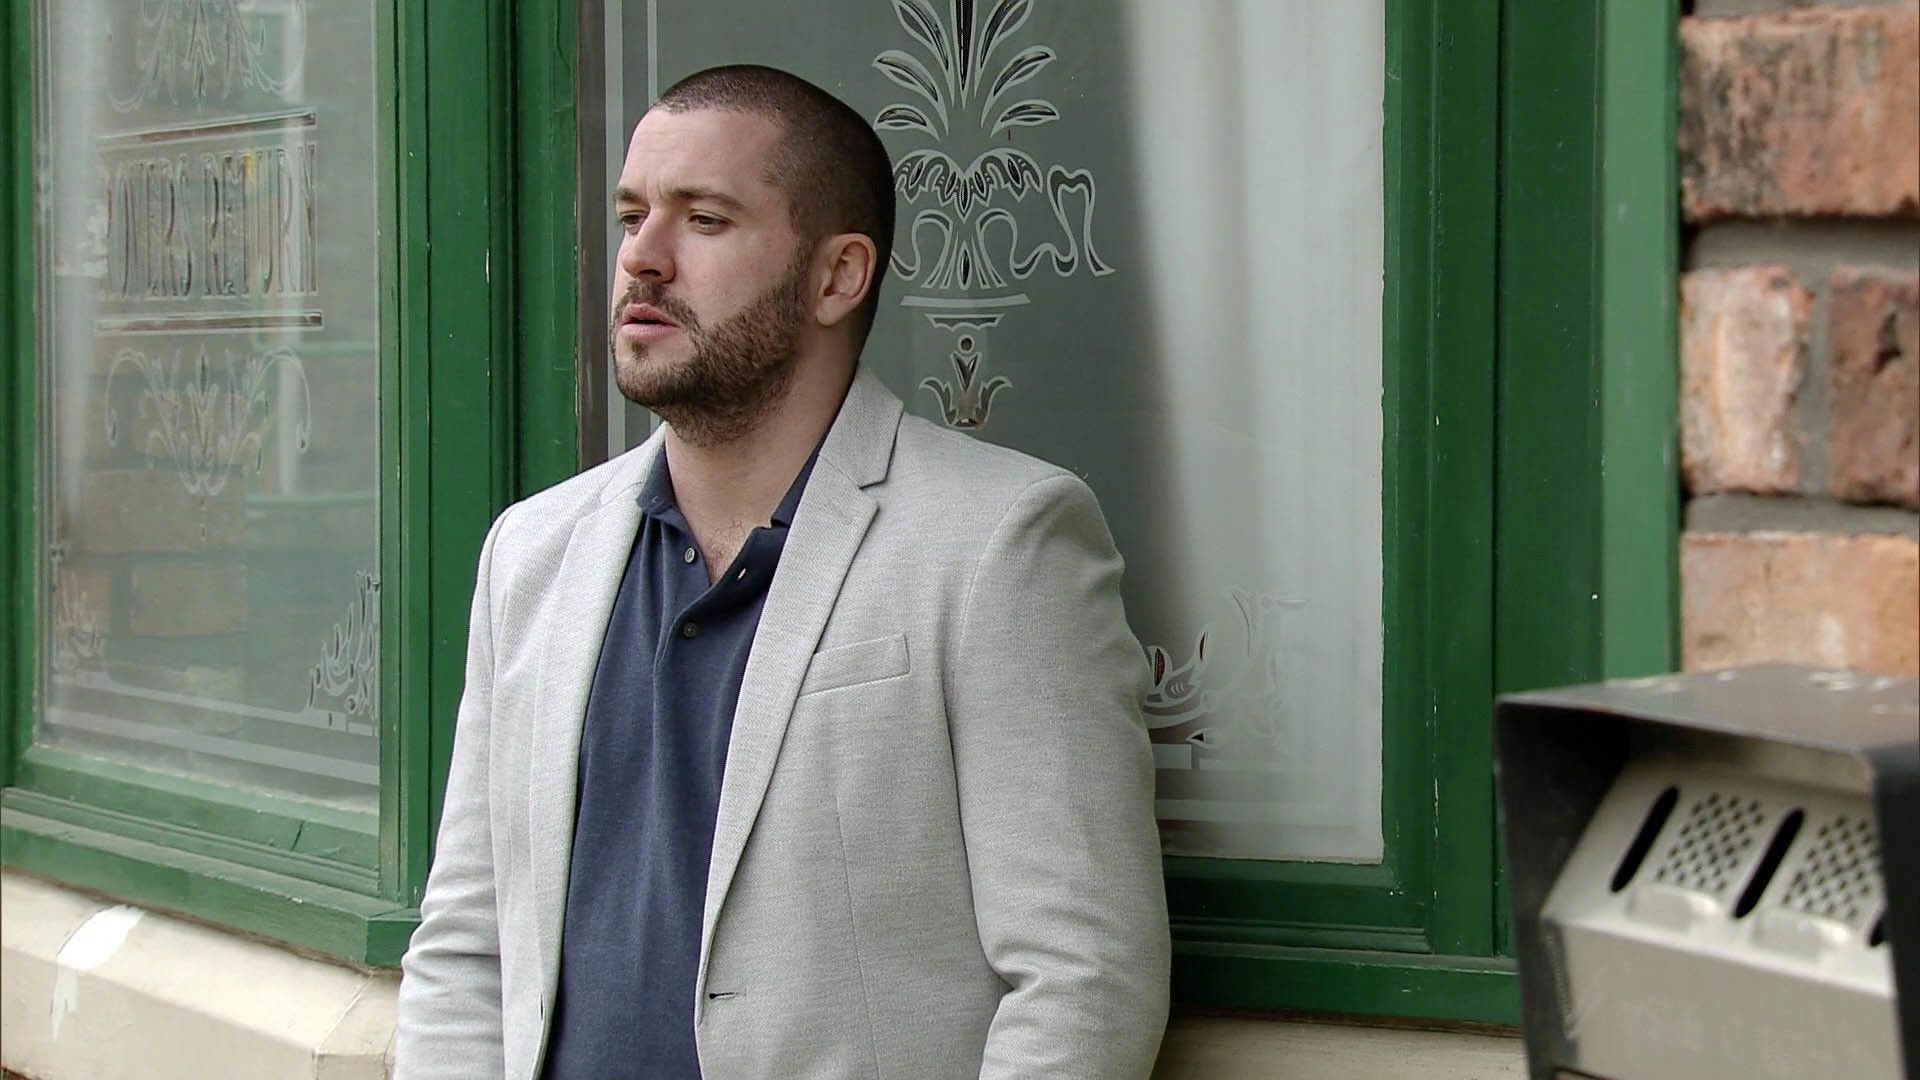 'Coronation Street' Announces Male Suicide Storyline For Shayne Ward